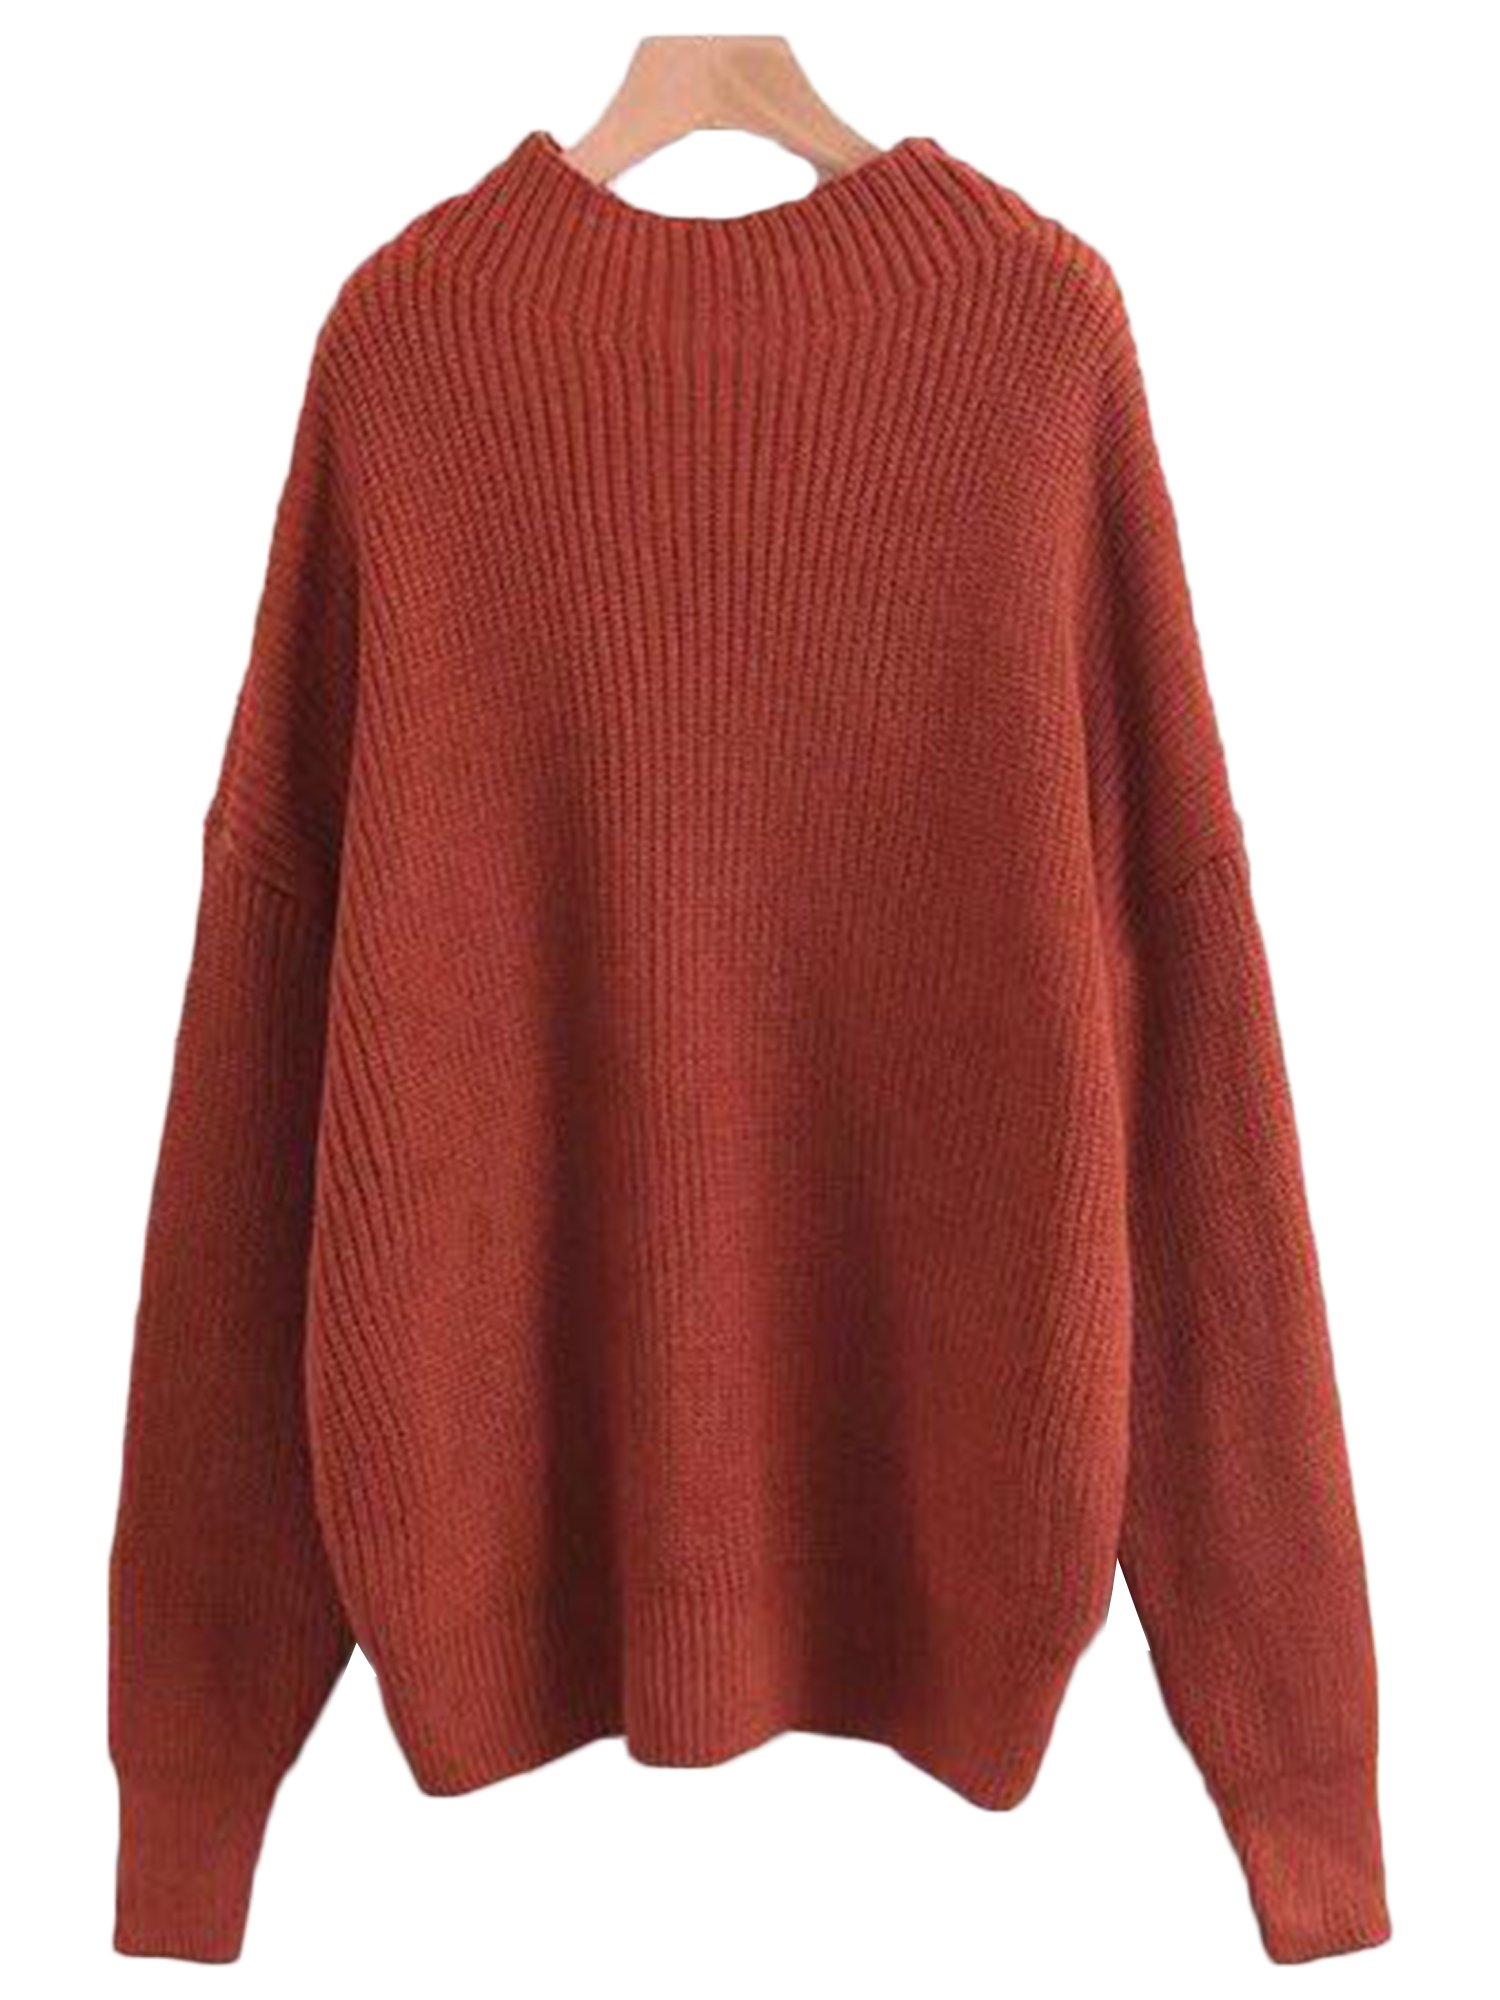 u0027thelmau0027 high-neck knitted sweater (4 colors) nvugyvl